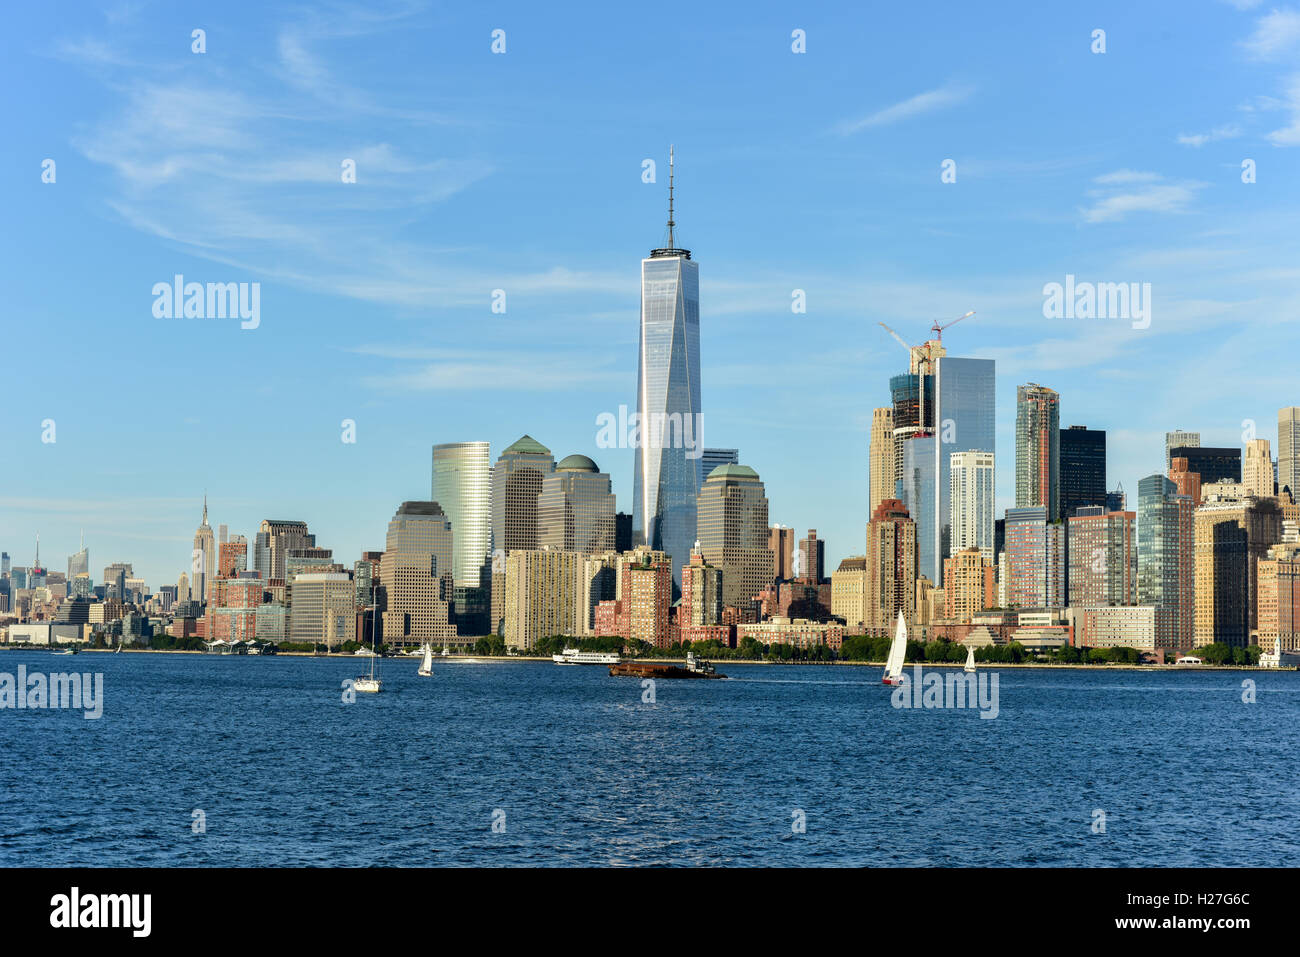 View of the New York City skyline on a summer day. - Stock Image